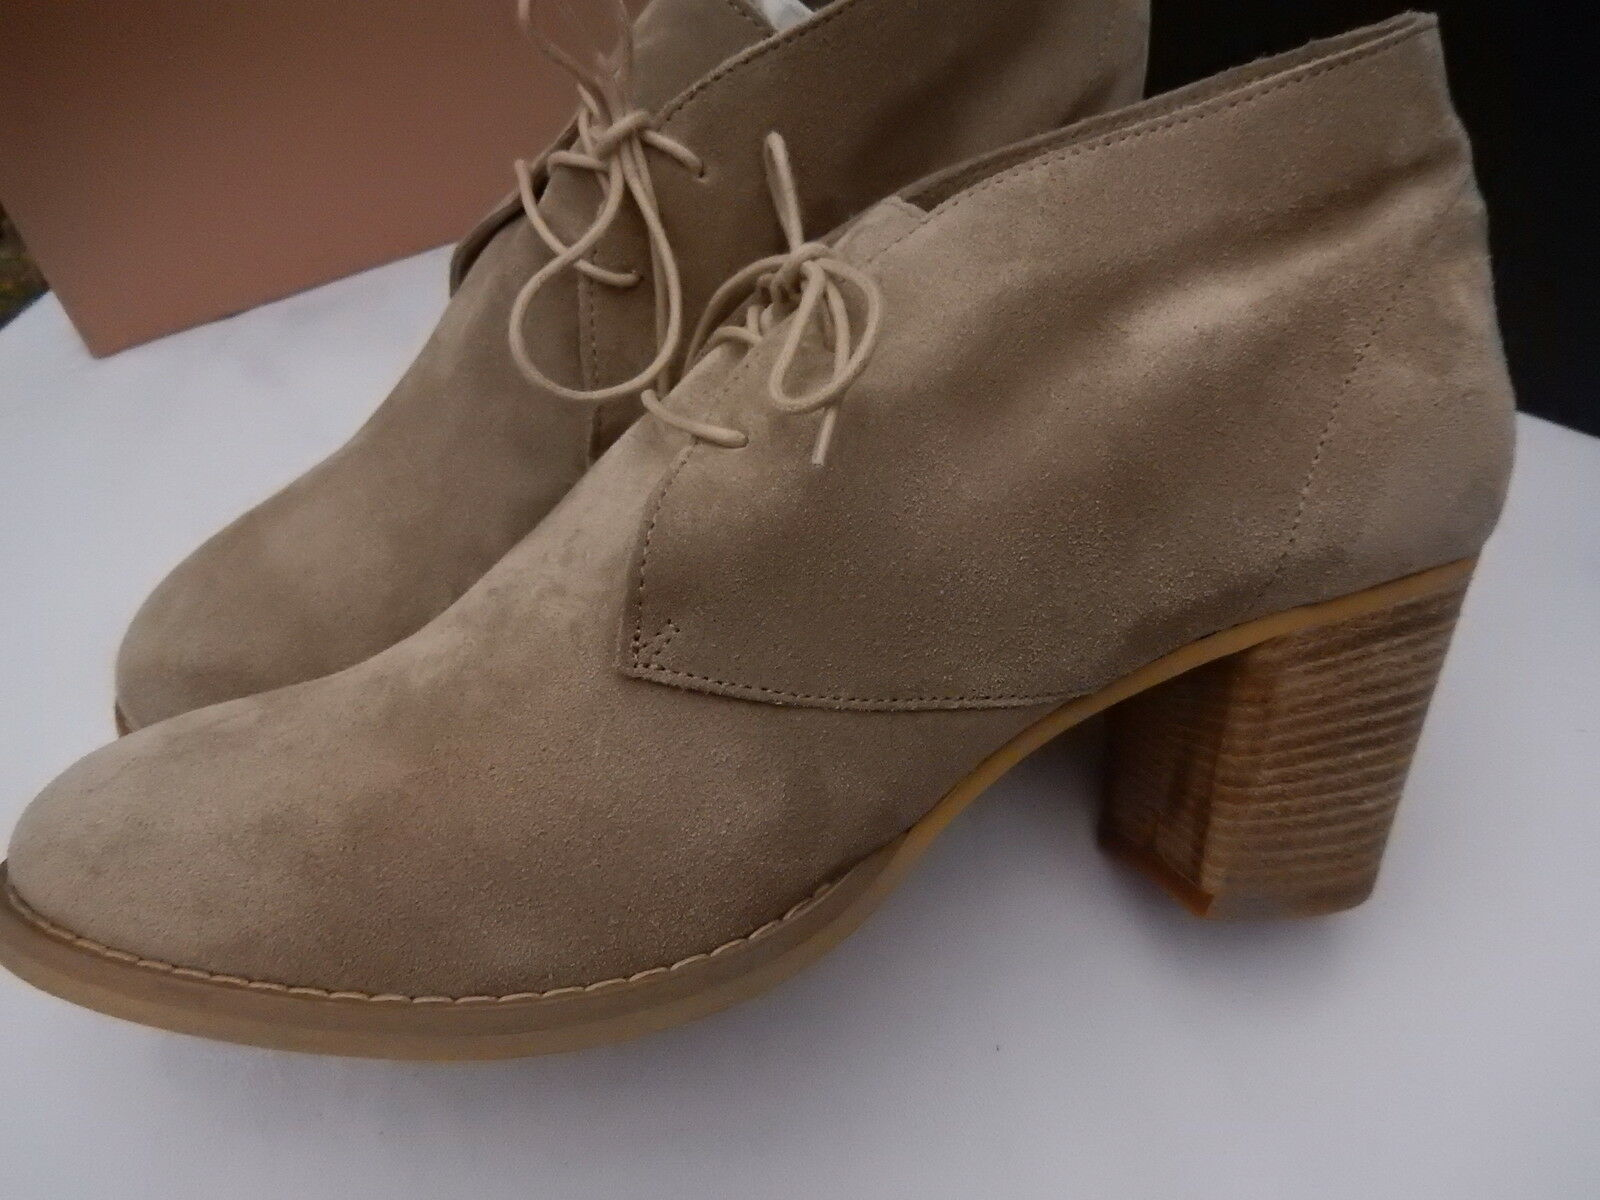 Carvela Beige Suede Women's ankle boots New Boxed Italian leather